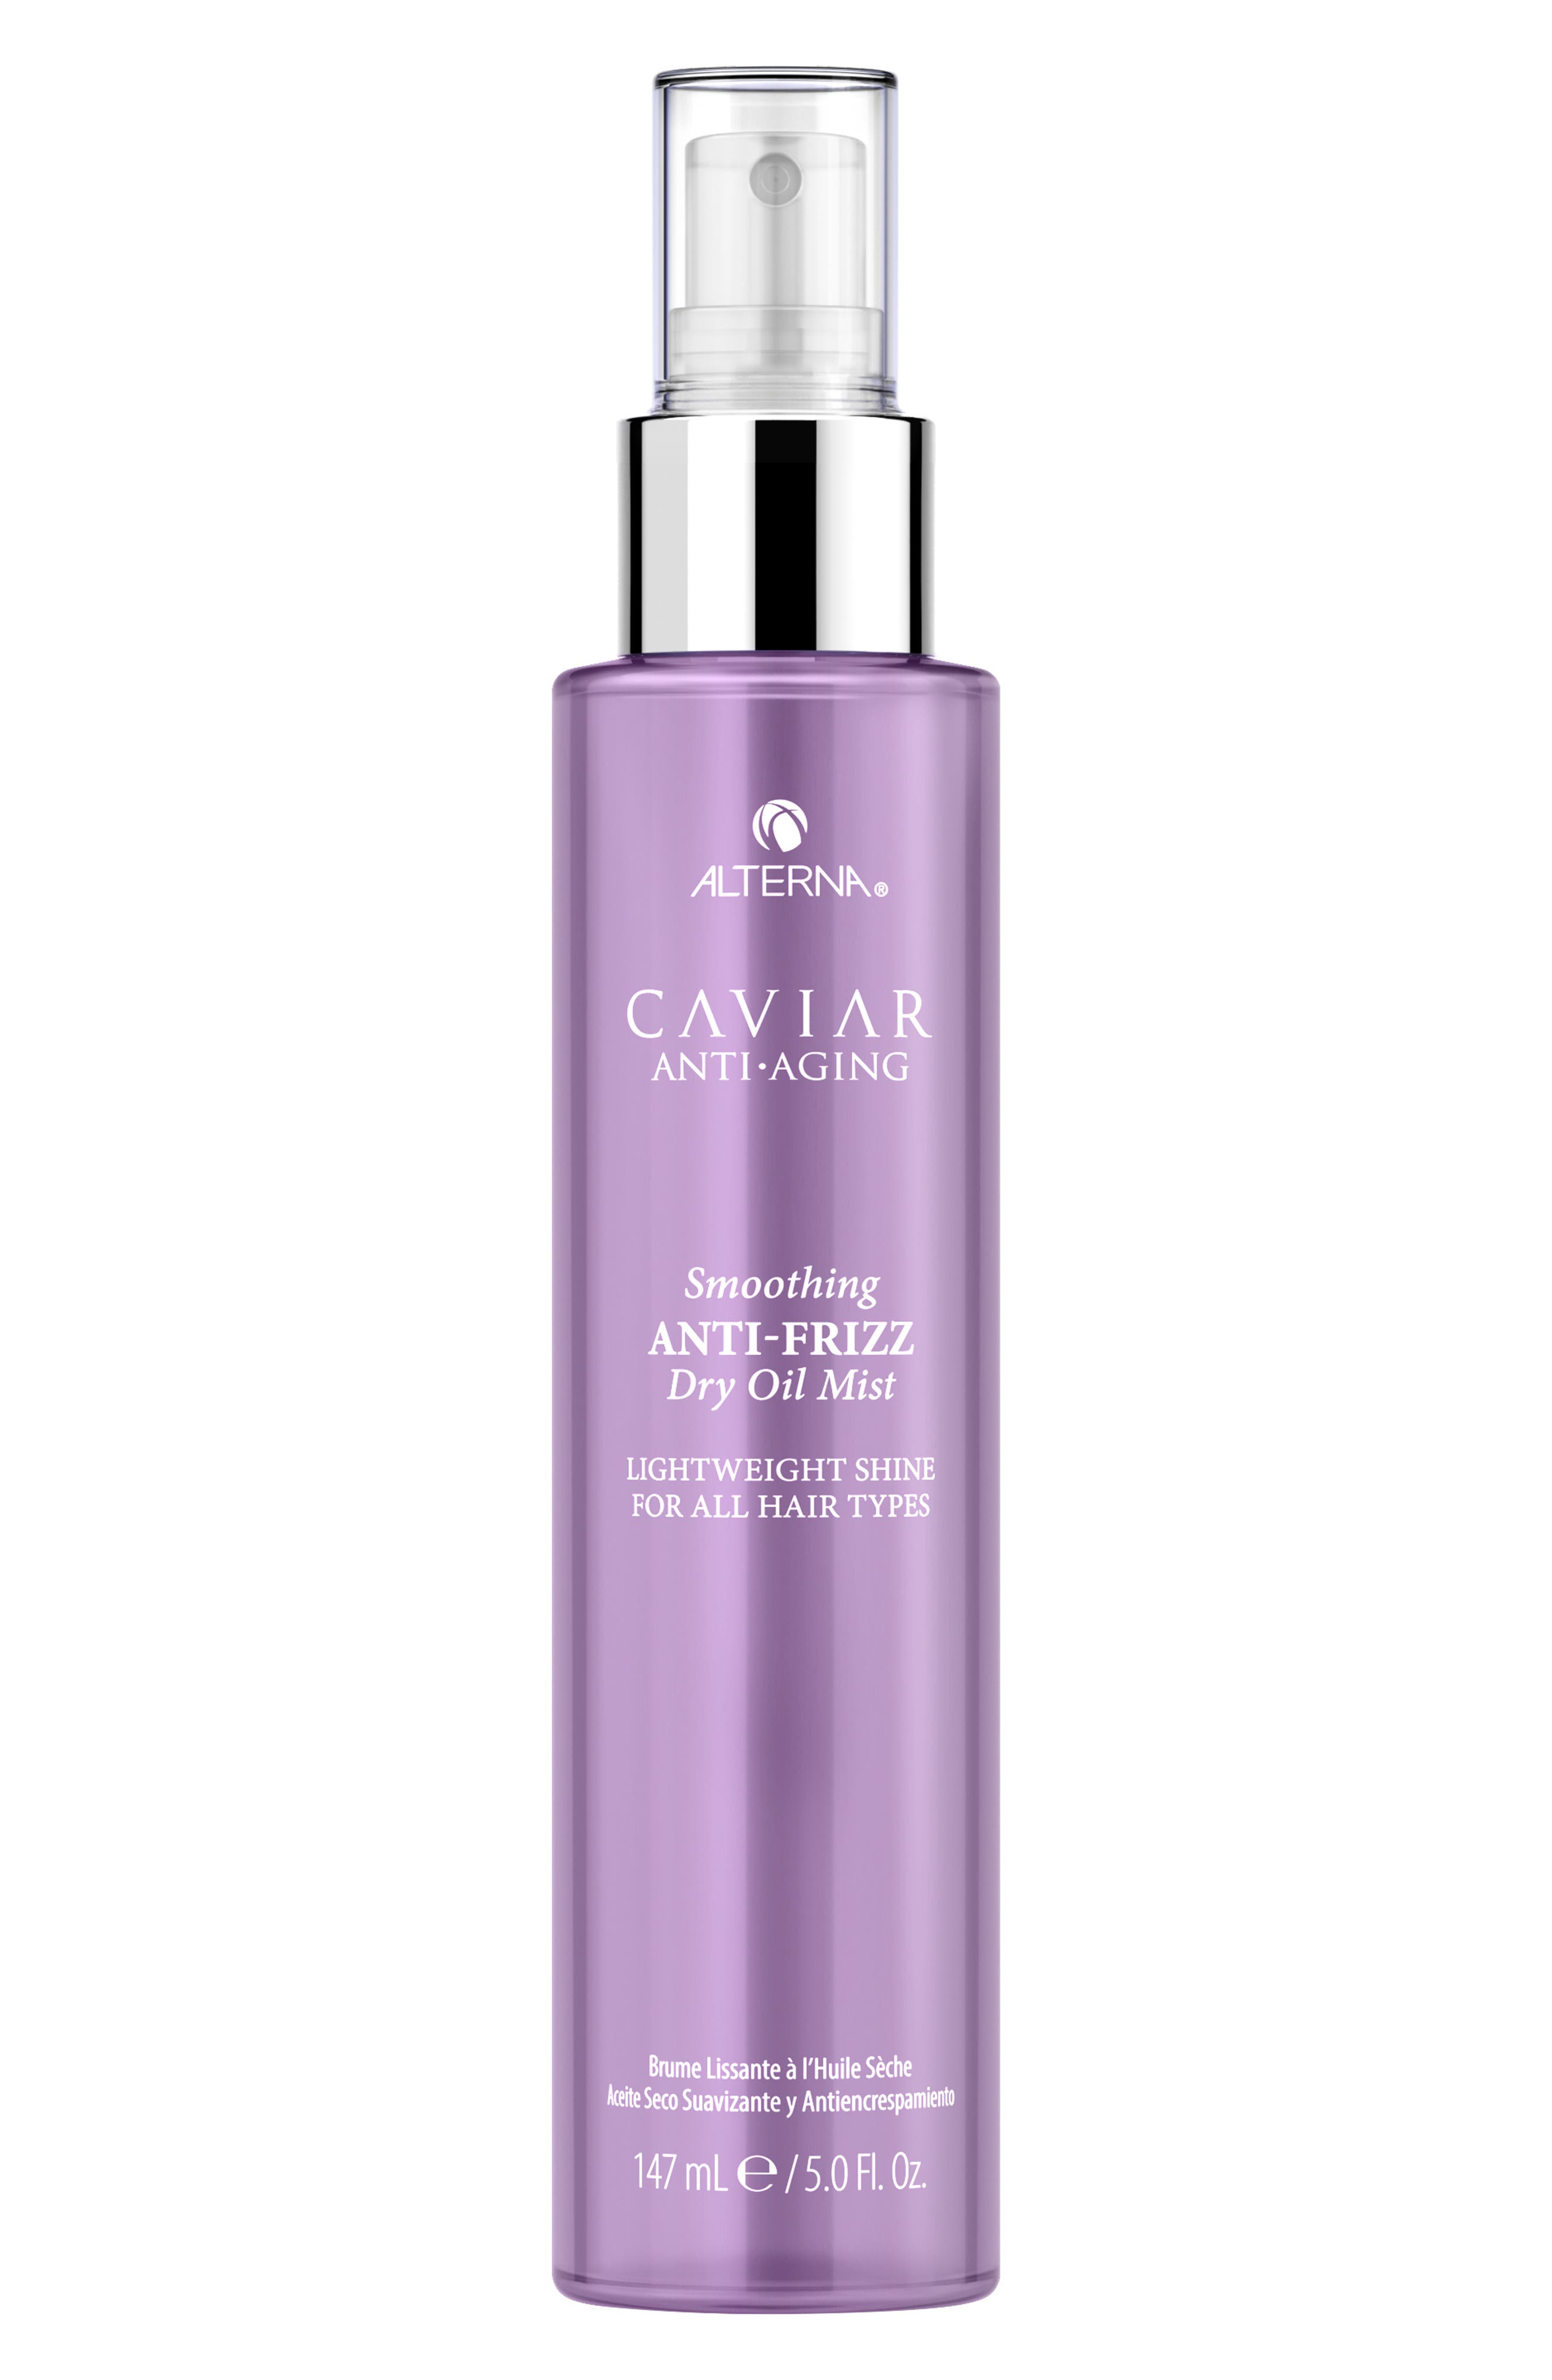 Caviar Anti-Aging Smoothing Anti-Frizz Dry Oil Mist,                             Main thumbnail 1, color,                             NO COLOR